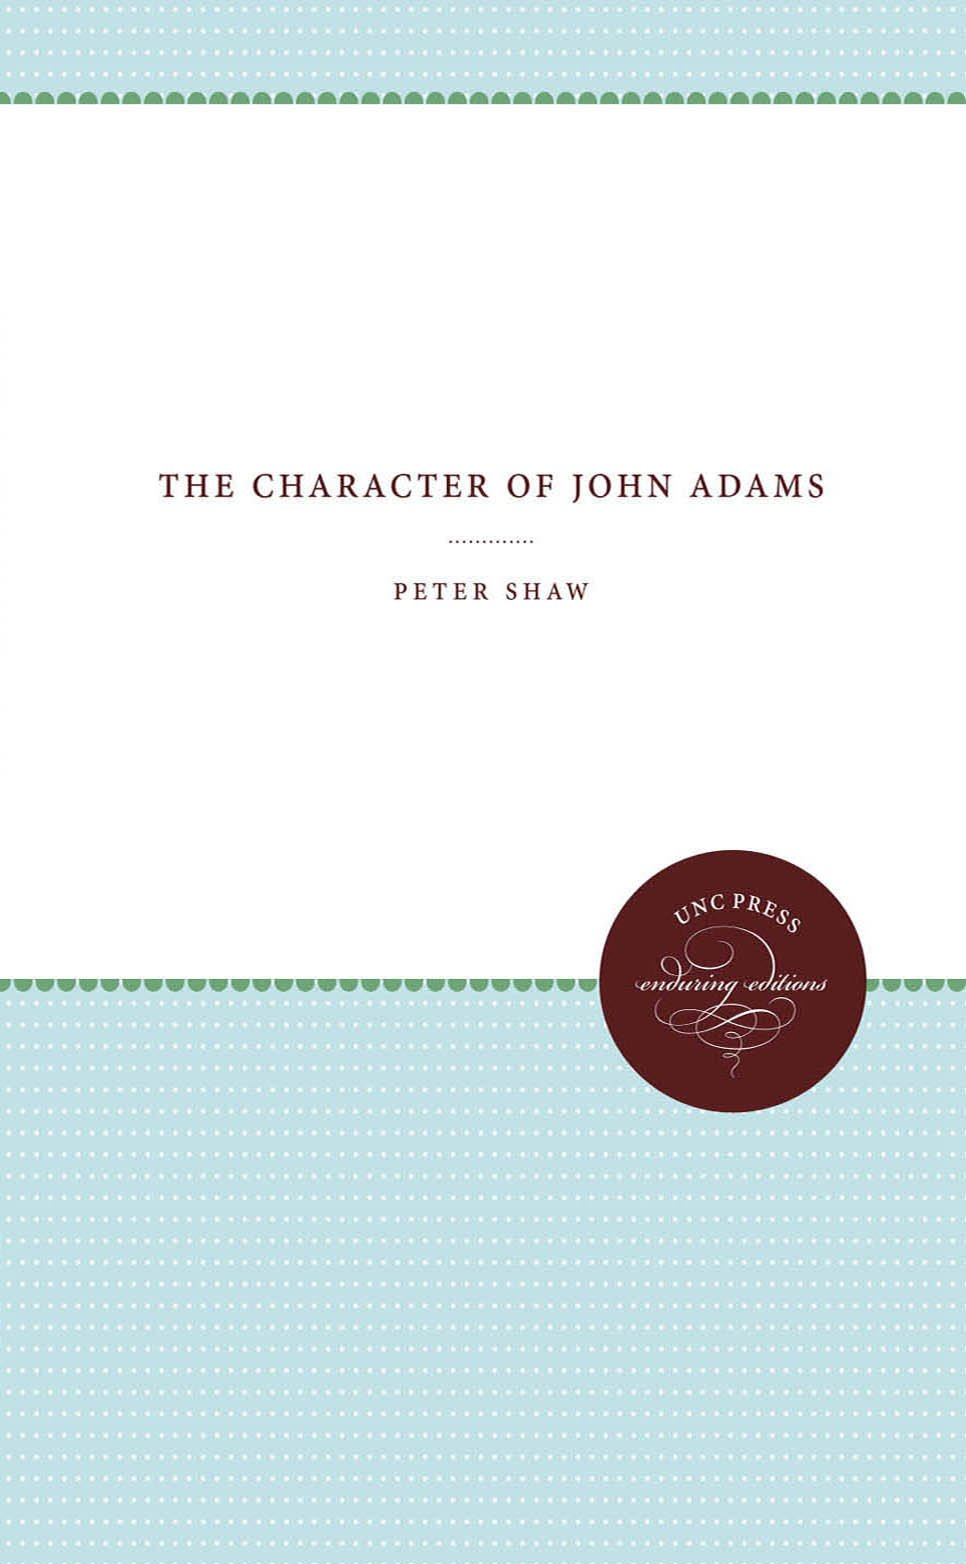 The Character of John Adams (Published by the Omohundro Institute of Early American History and Culture and the University of North Carolina Press)